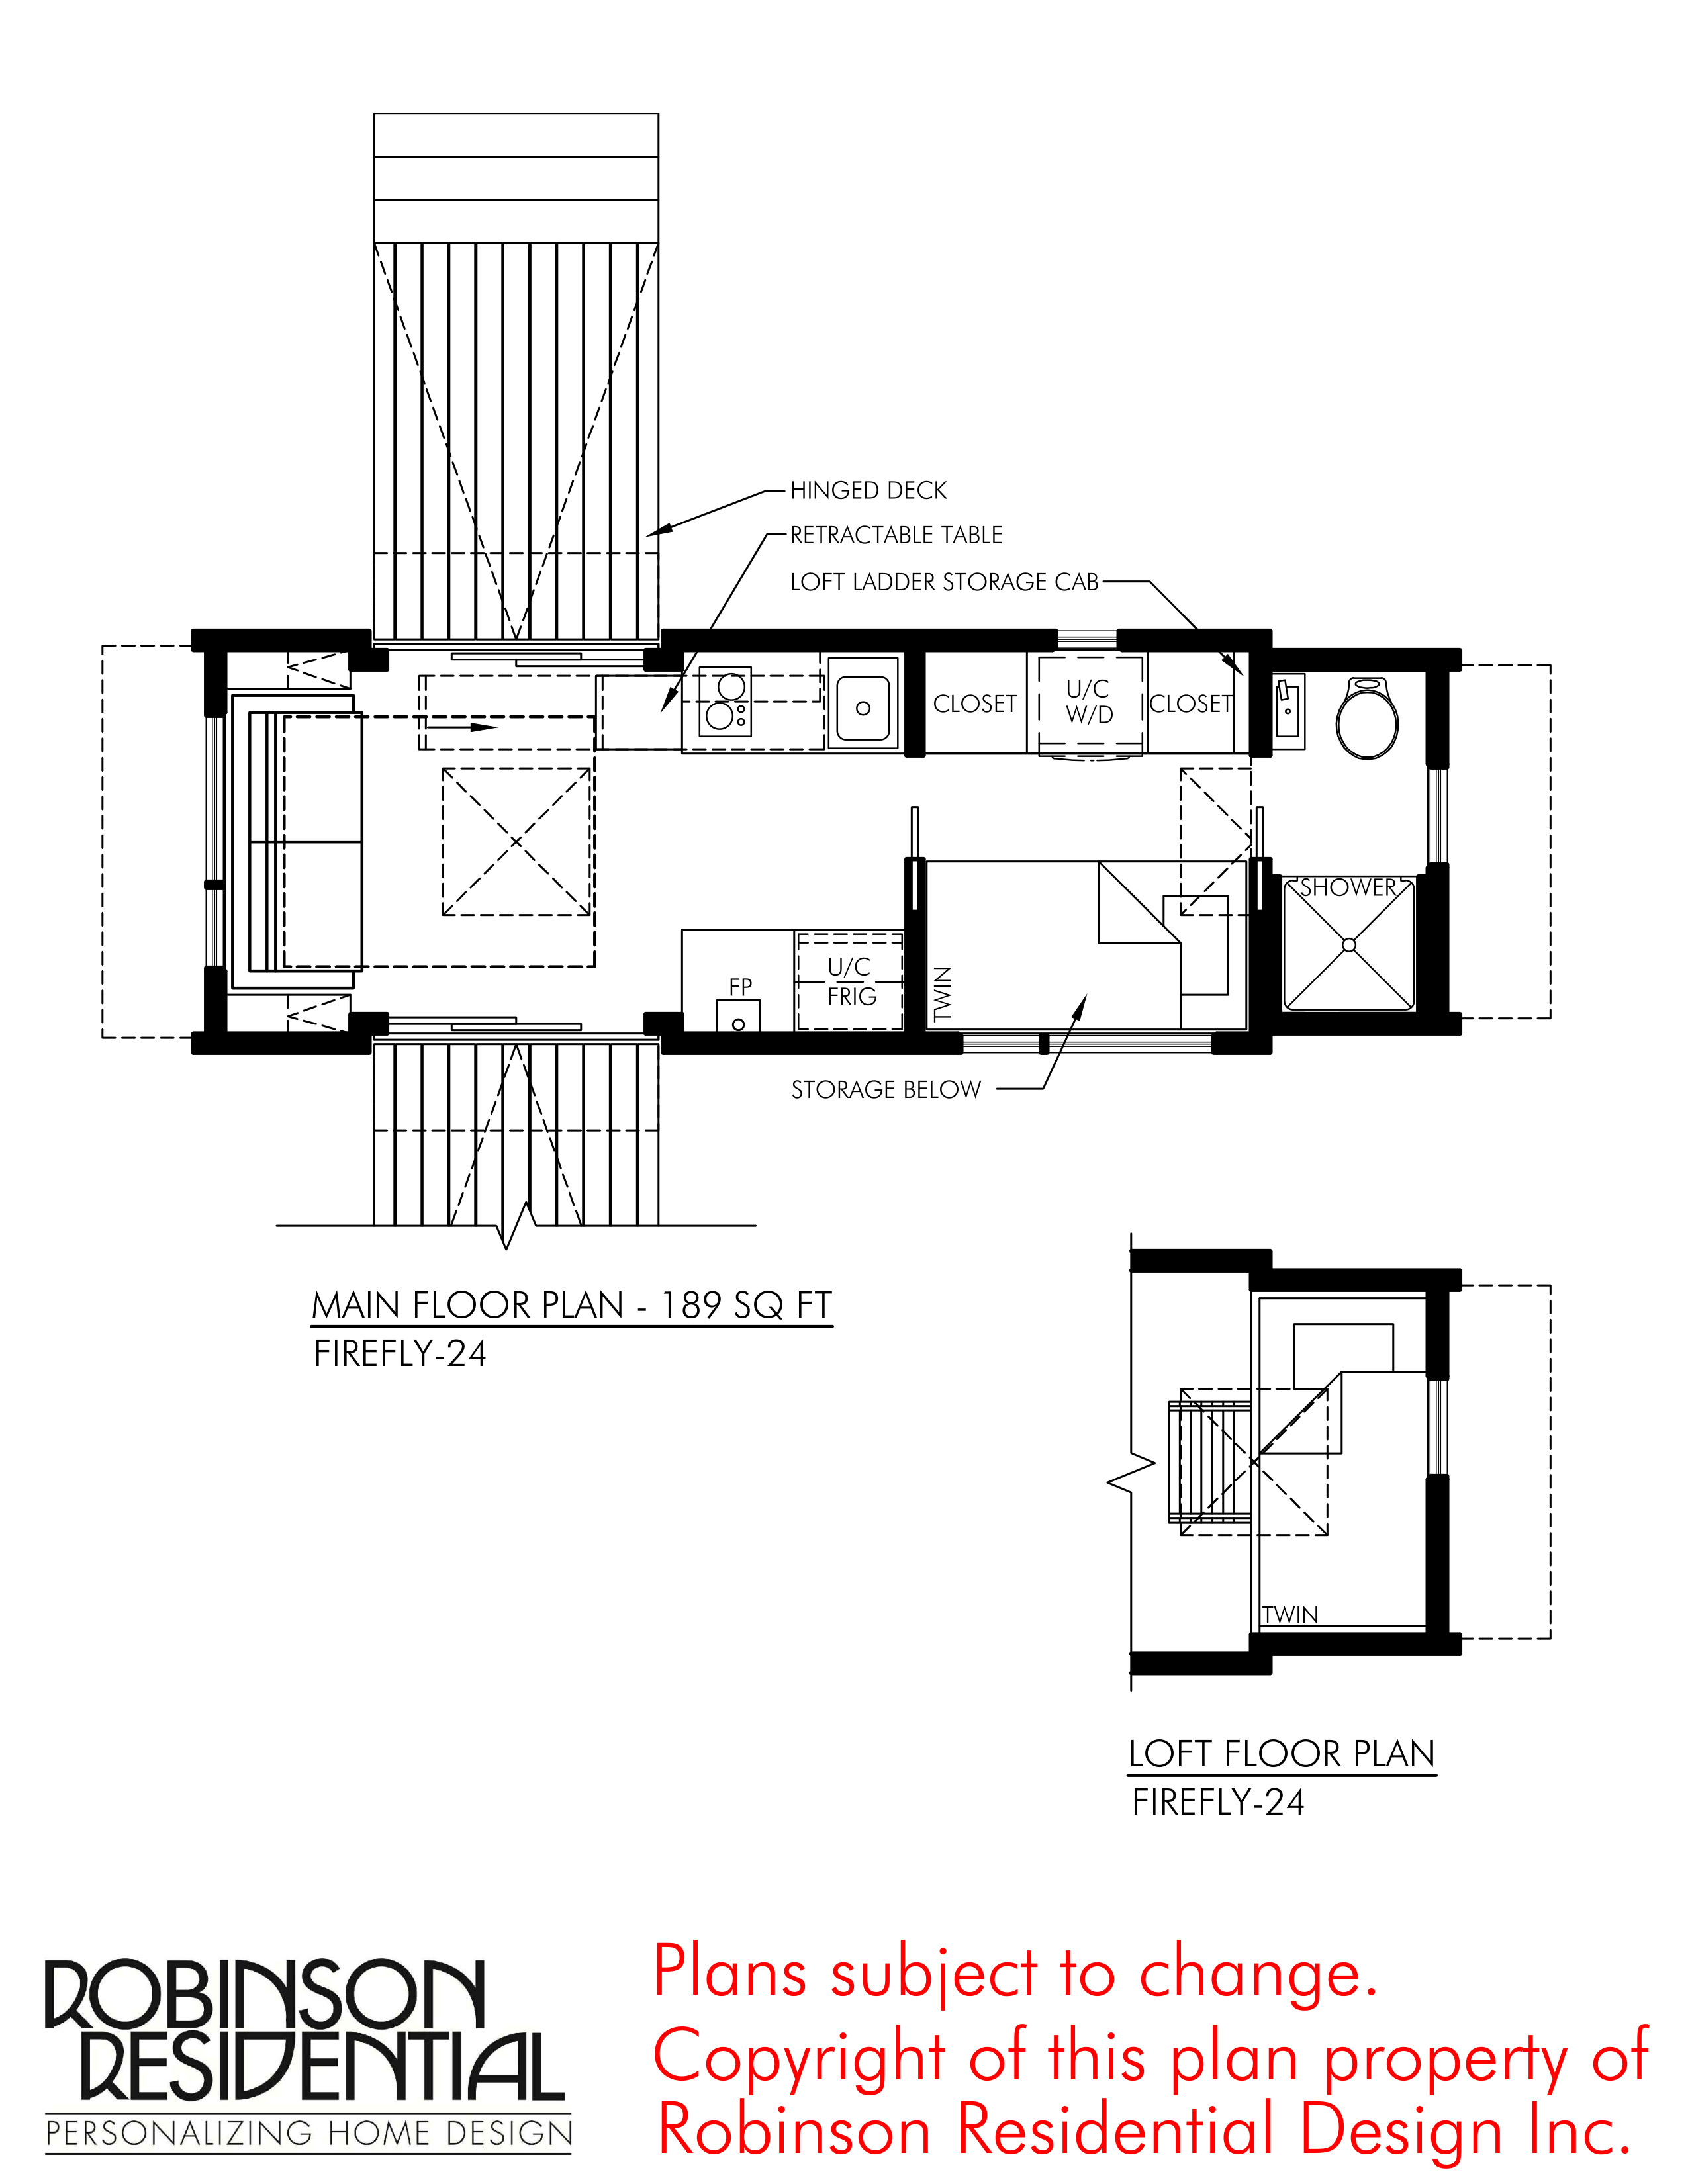 CONTEMPORARY TINY HOUSE PLANS FIREFLY 24 01 FLOOR PLAN